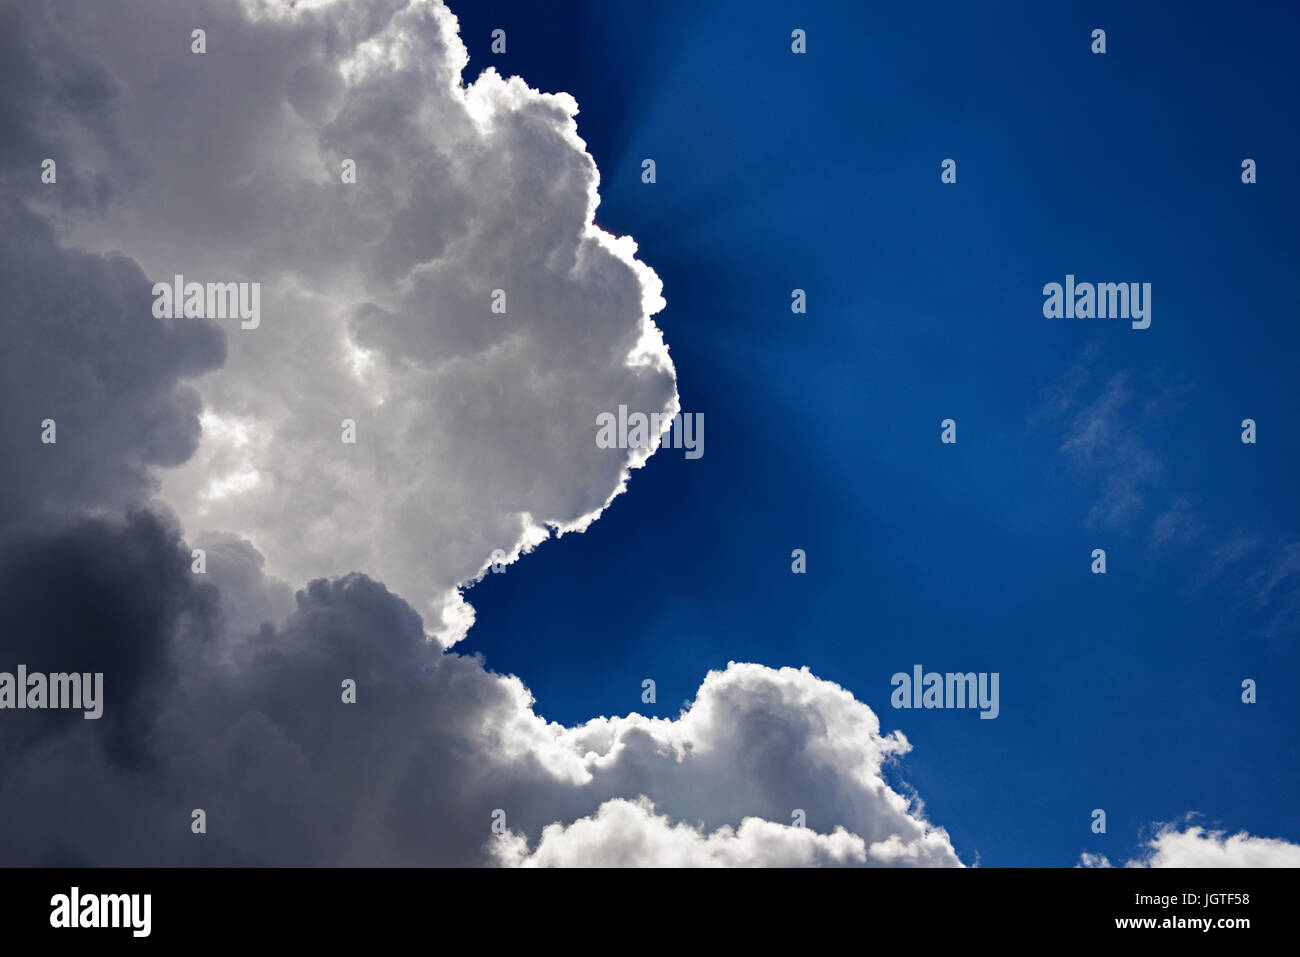 Every cloud has a silver lining - Stock Image